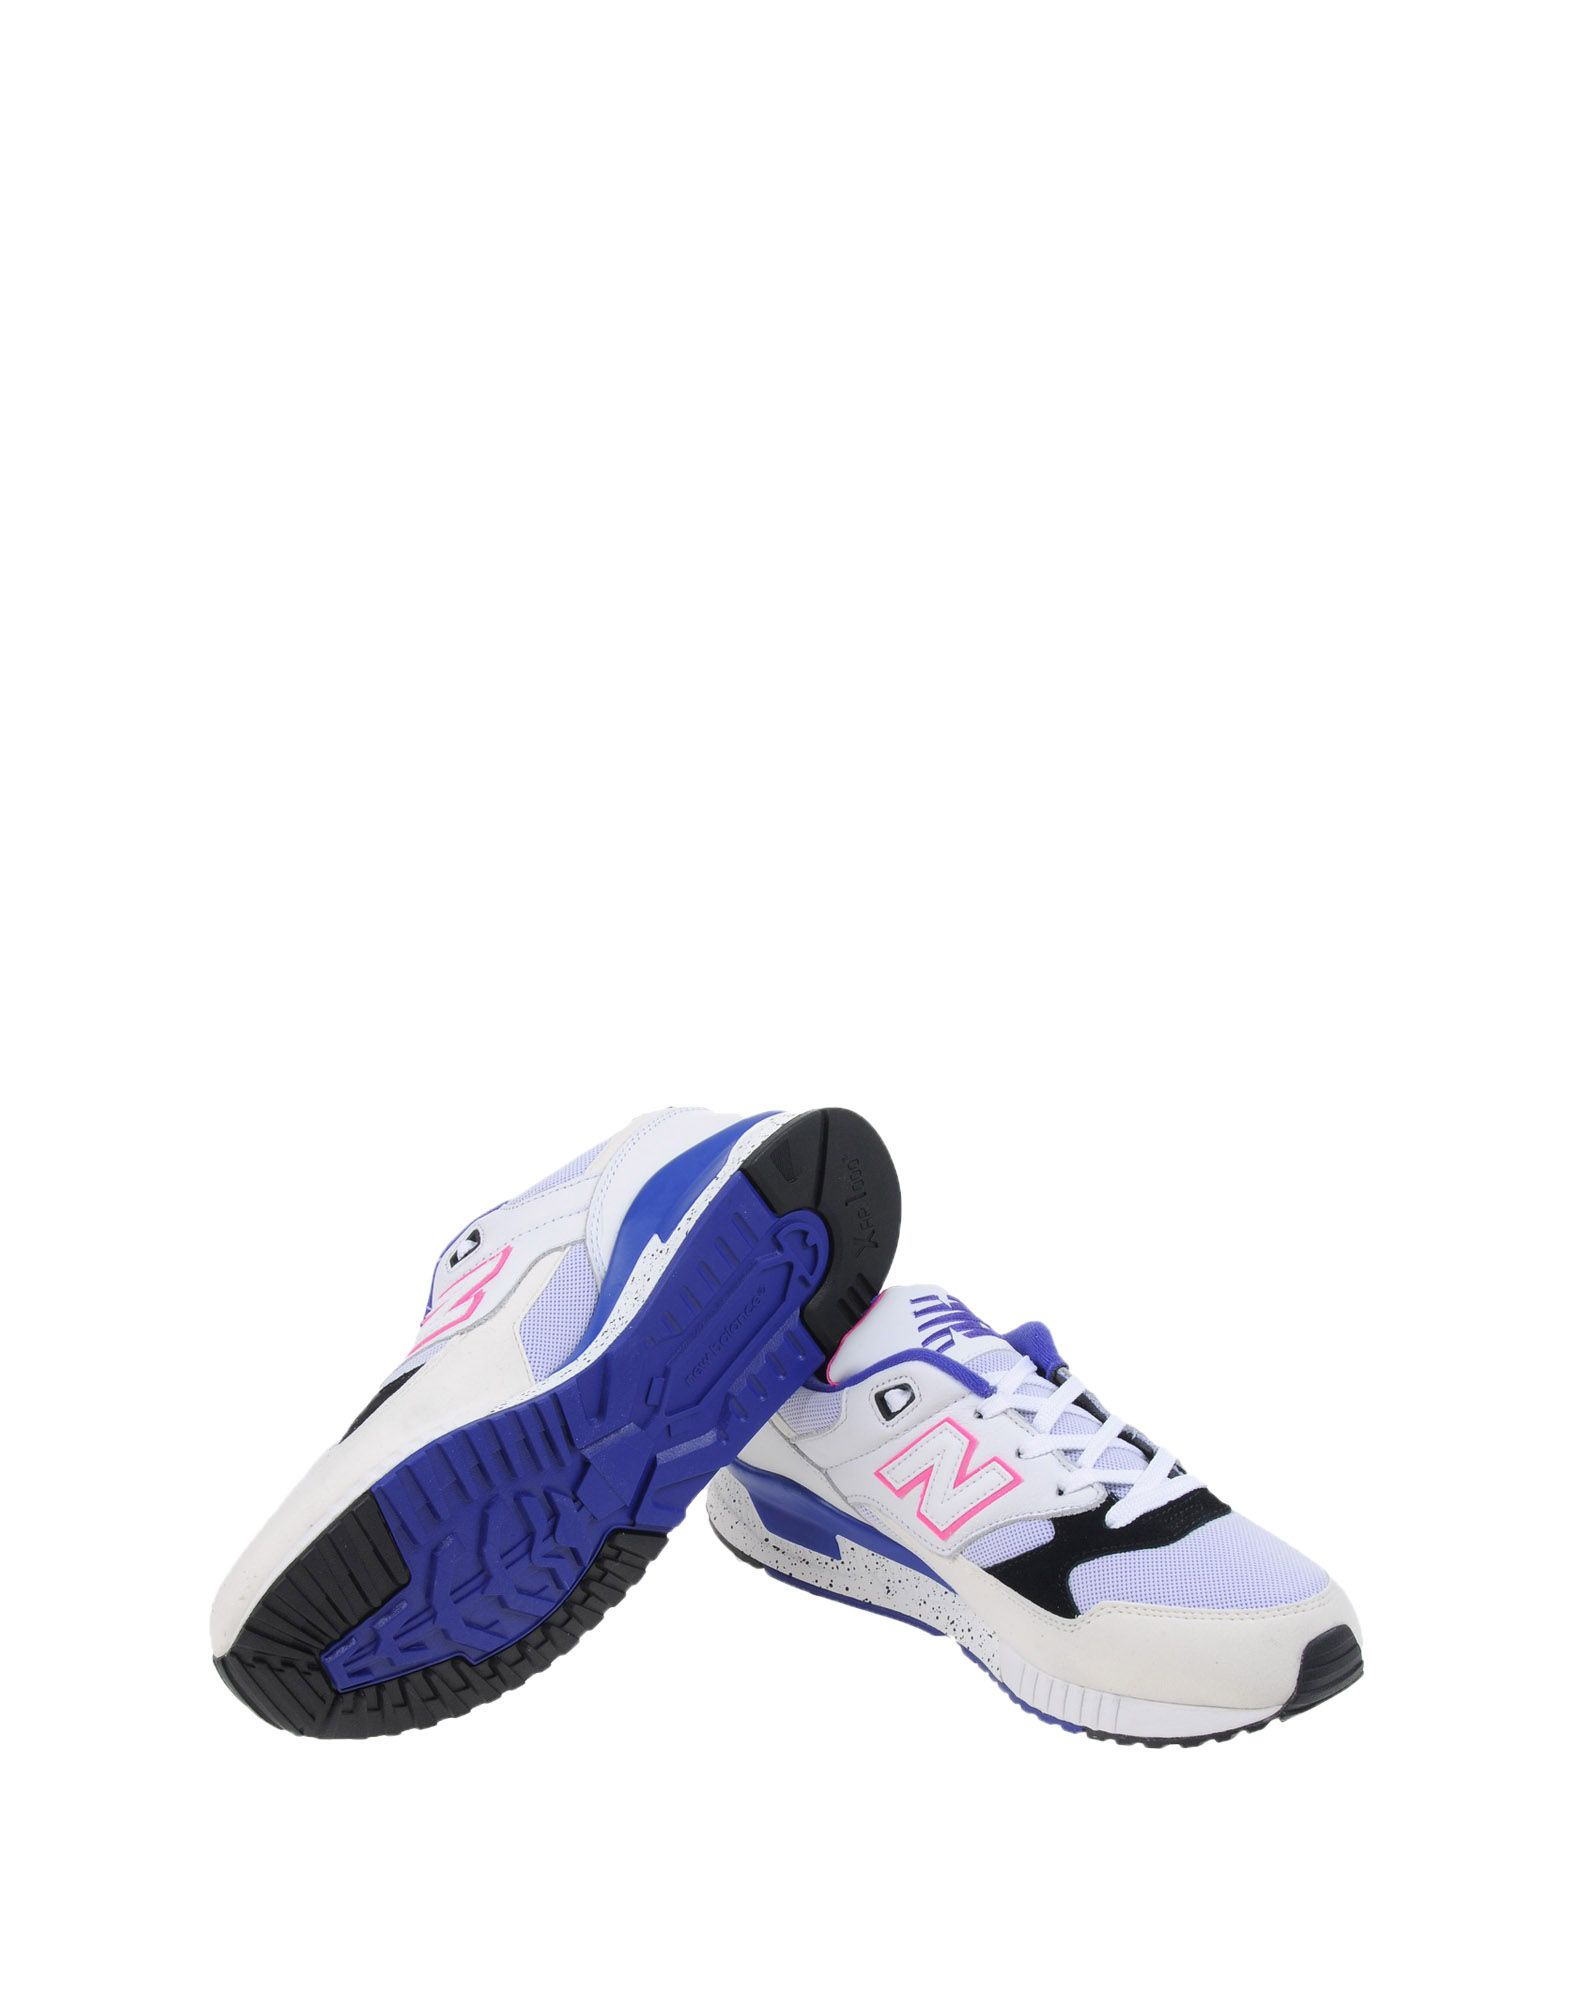 Sneakers New Balance 530 Sport 90Ies - Homme - Sneakers New Balance sur